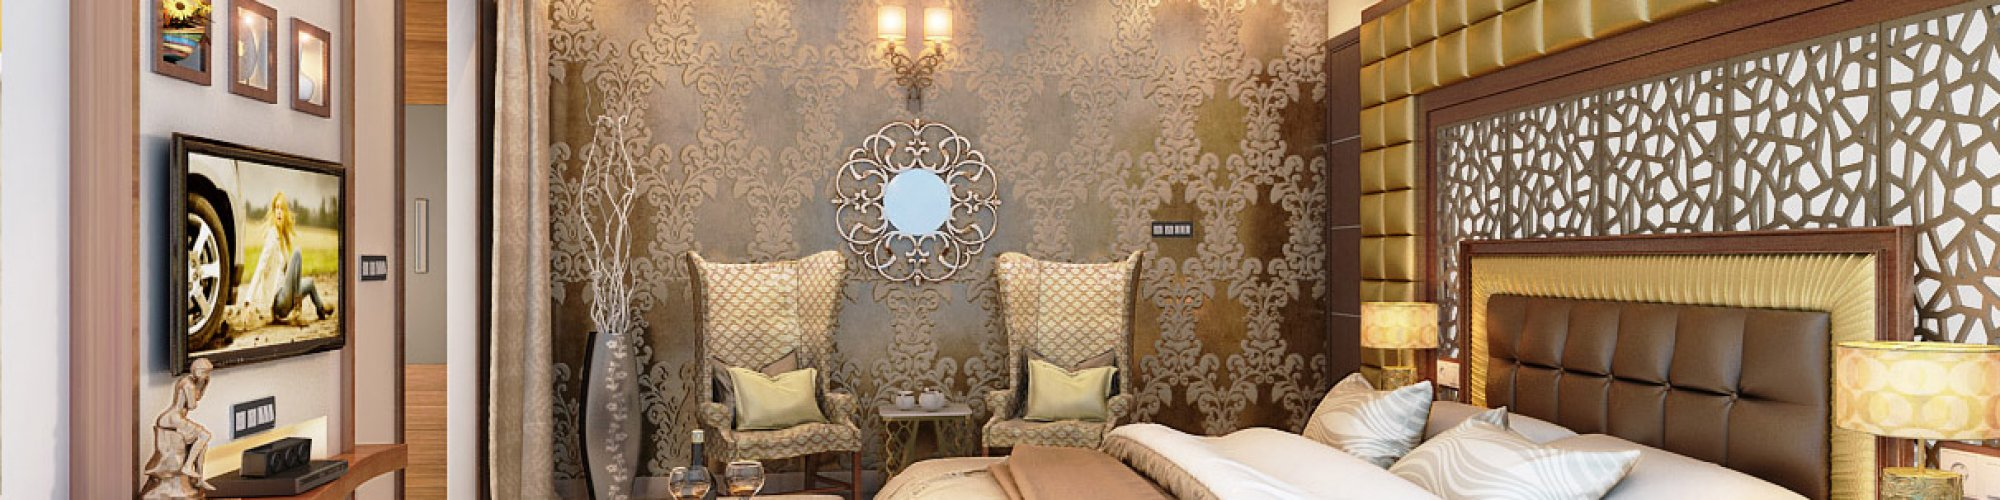 kataak home decor in india interior design online apartment9 launches andrew martin s home d 233 cor in india